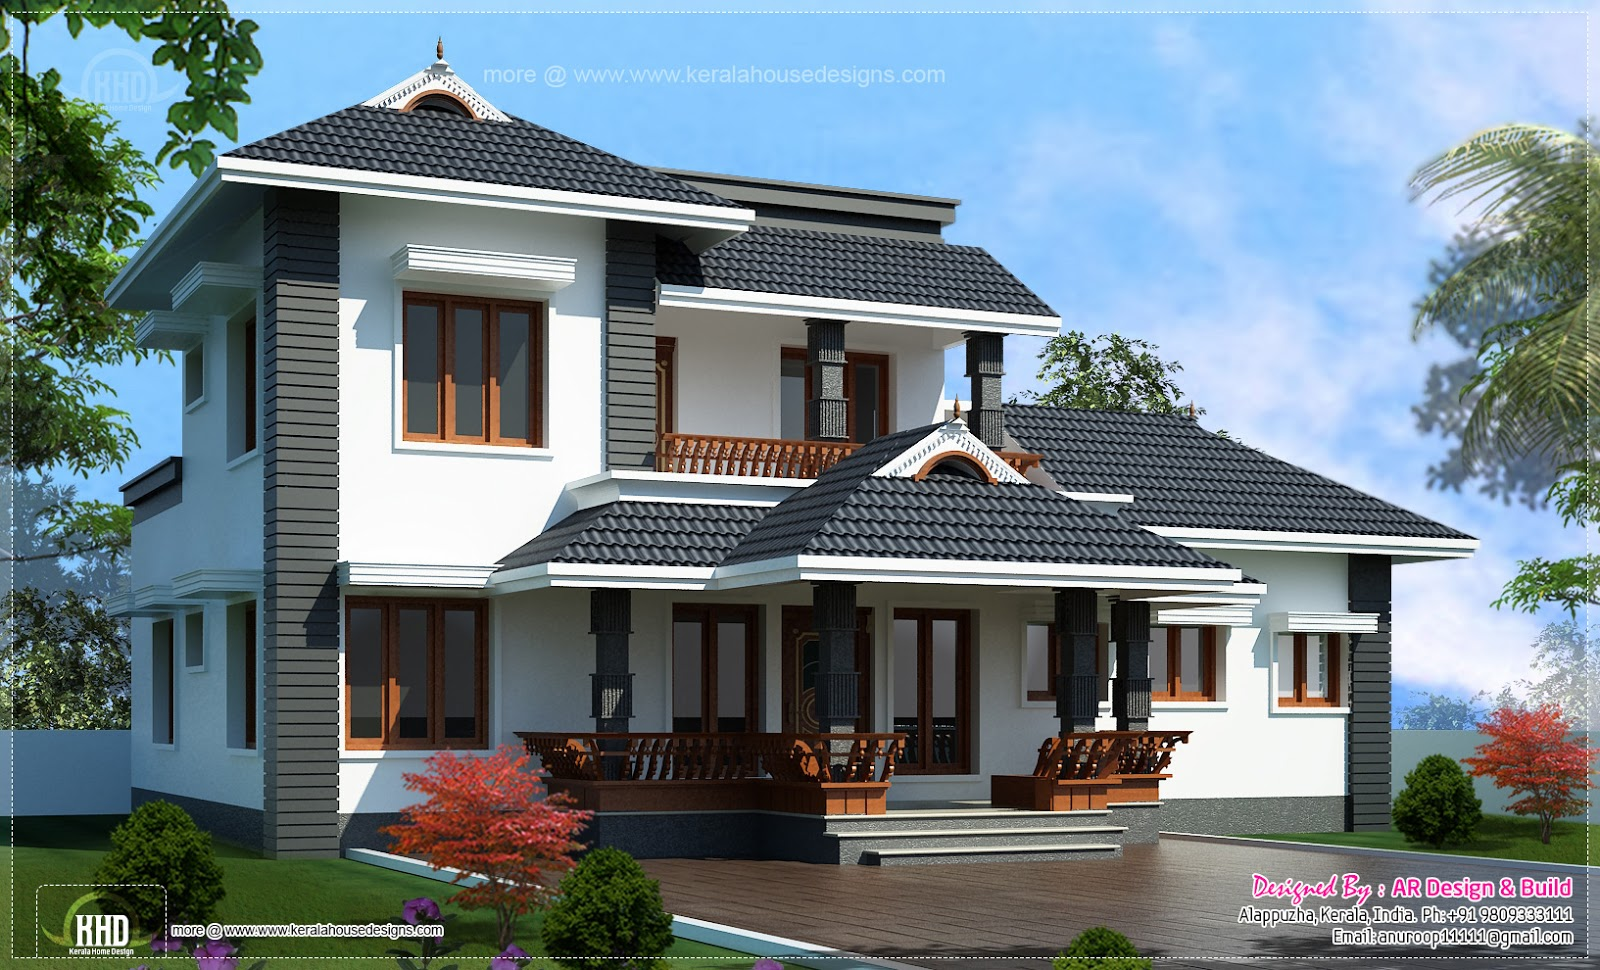 2000 4 bedroom sloping roof residence kerala home design and floor plans Design my home